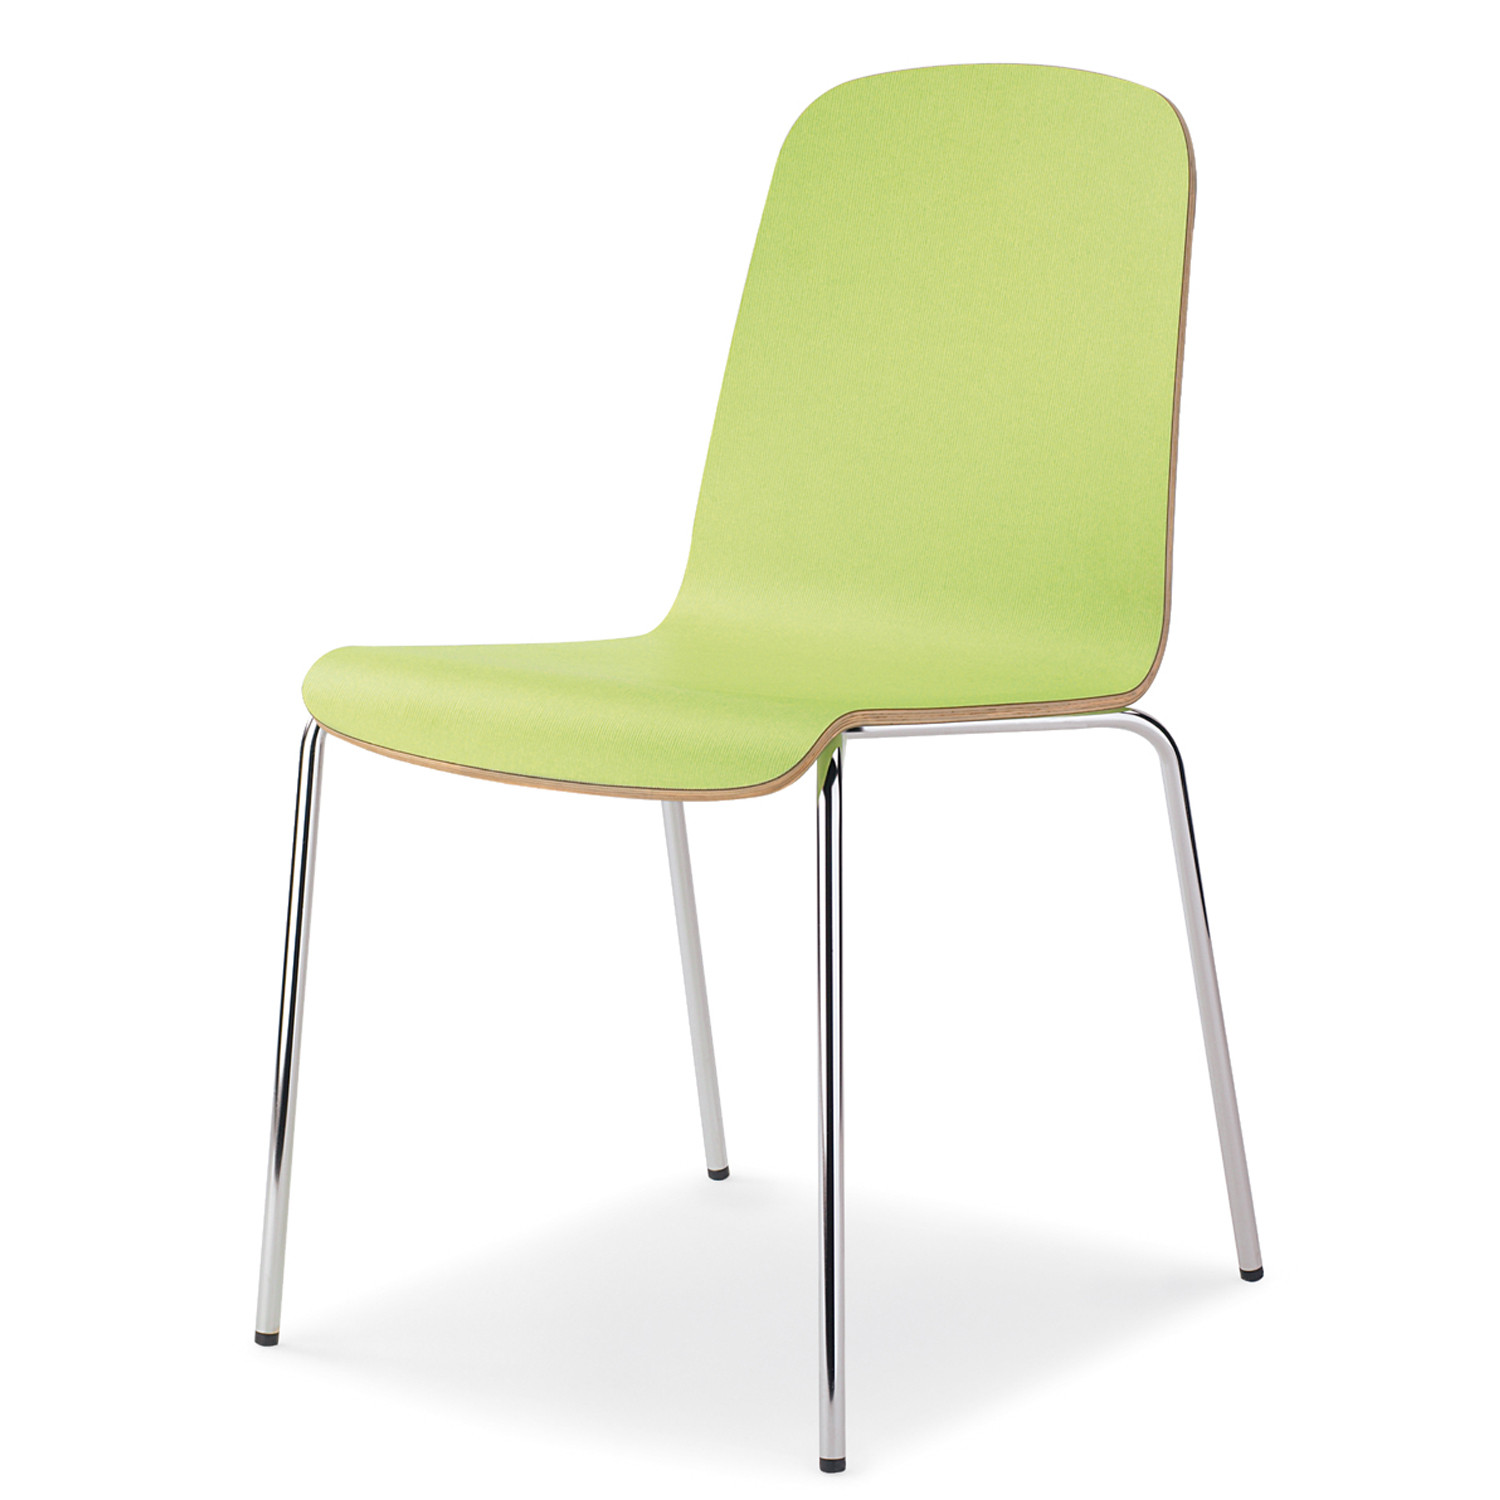 Trend Chair by Pedrali